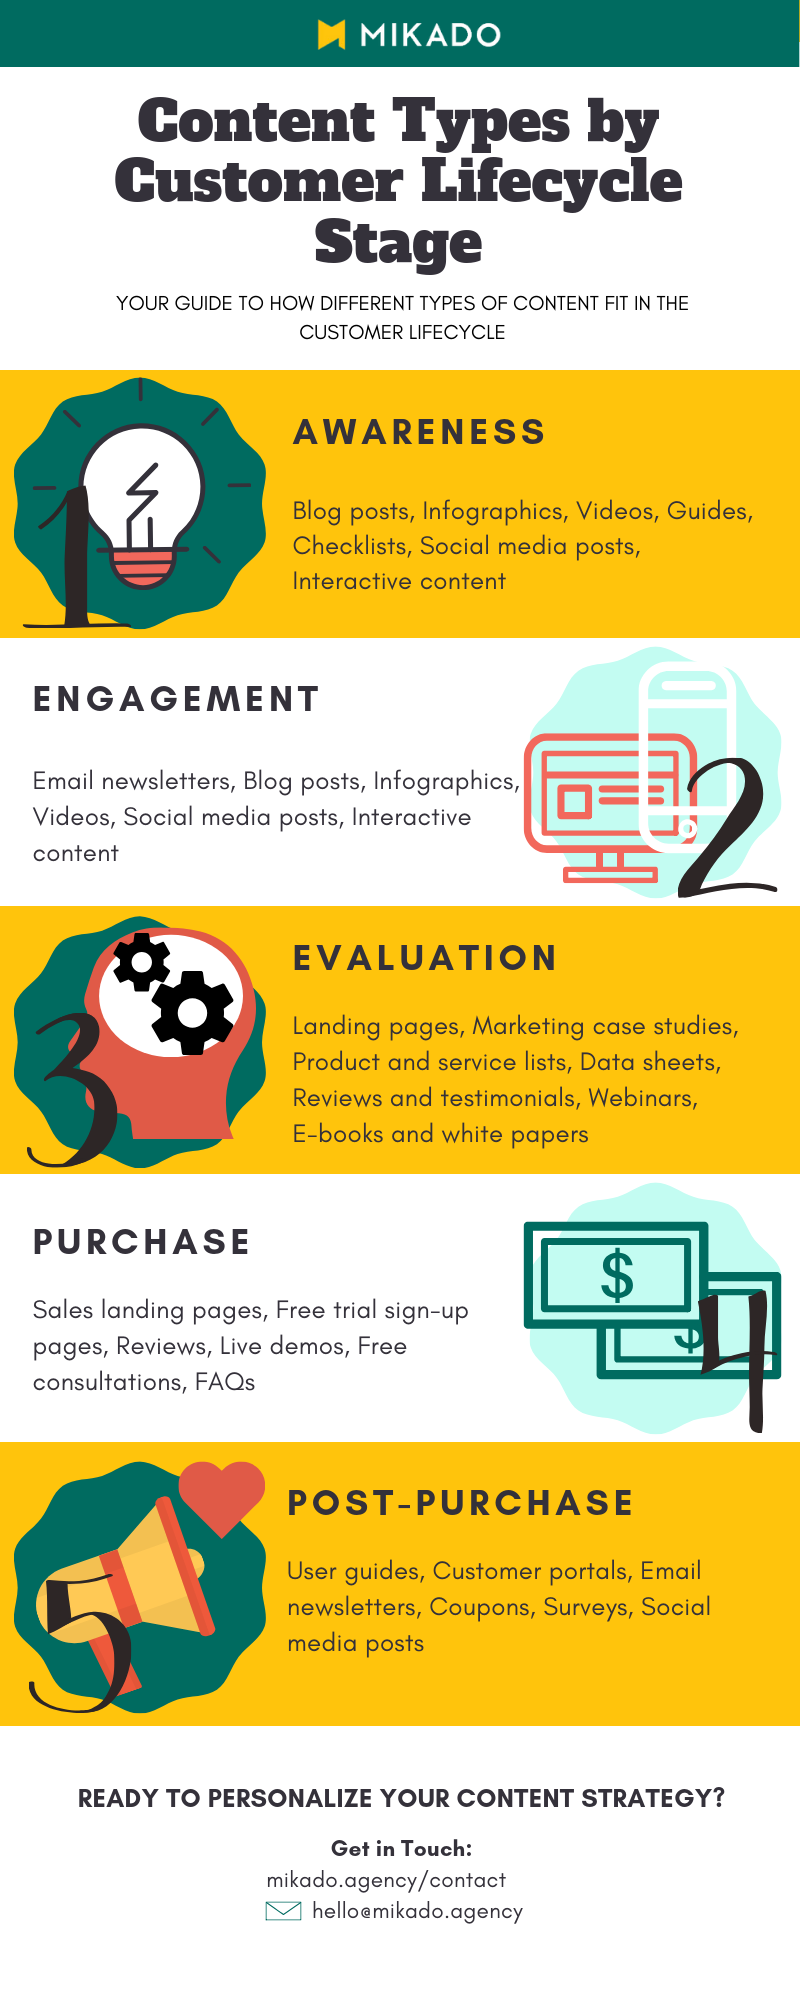 Content Types by Customer Lifecycle Stage